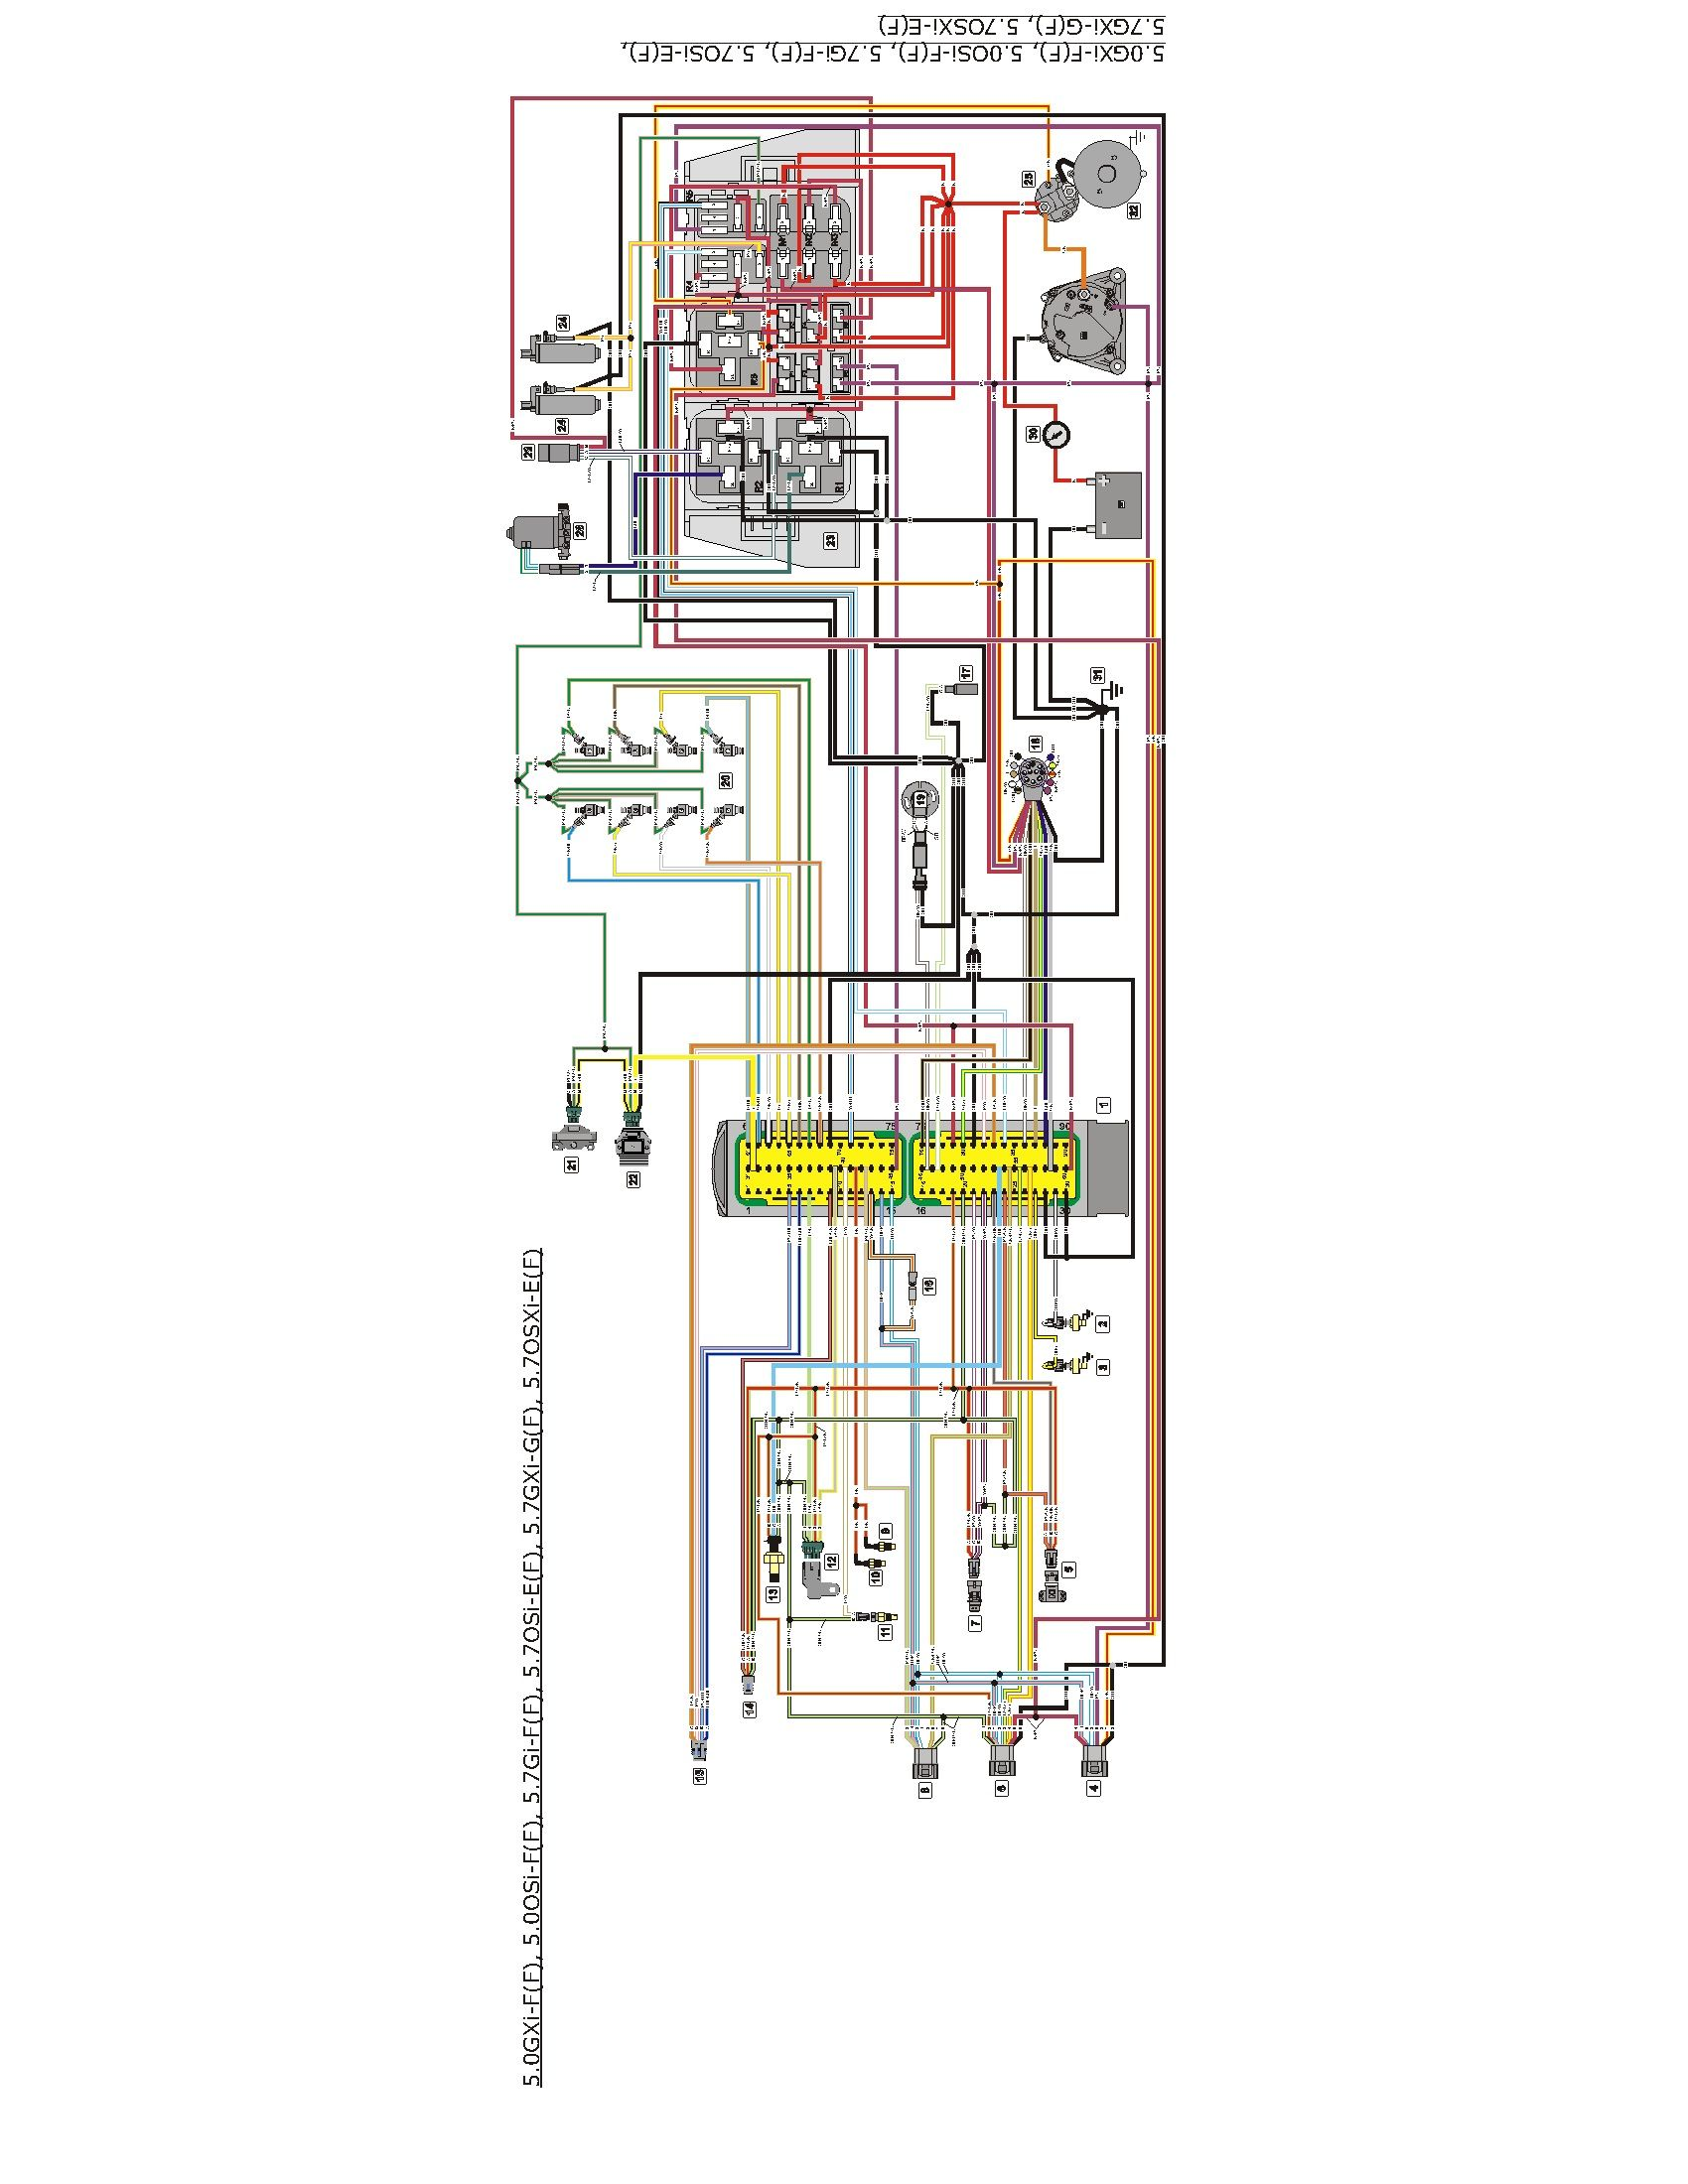 38e0106861e0fe47e508530985b32839 volvo penta 5 7 engine wiring diagram yate pinterest volvo volvo penta wiring harness diagram at eliteediting.co